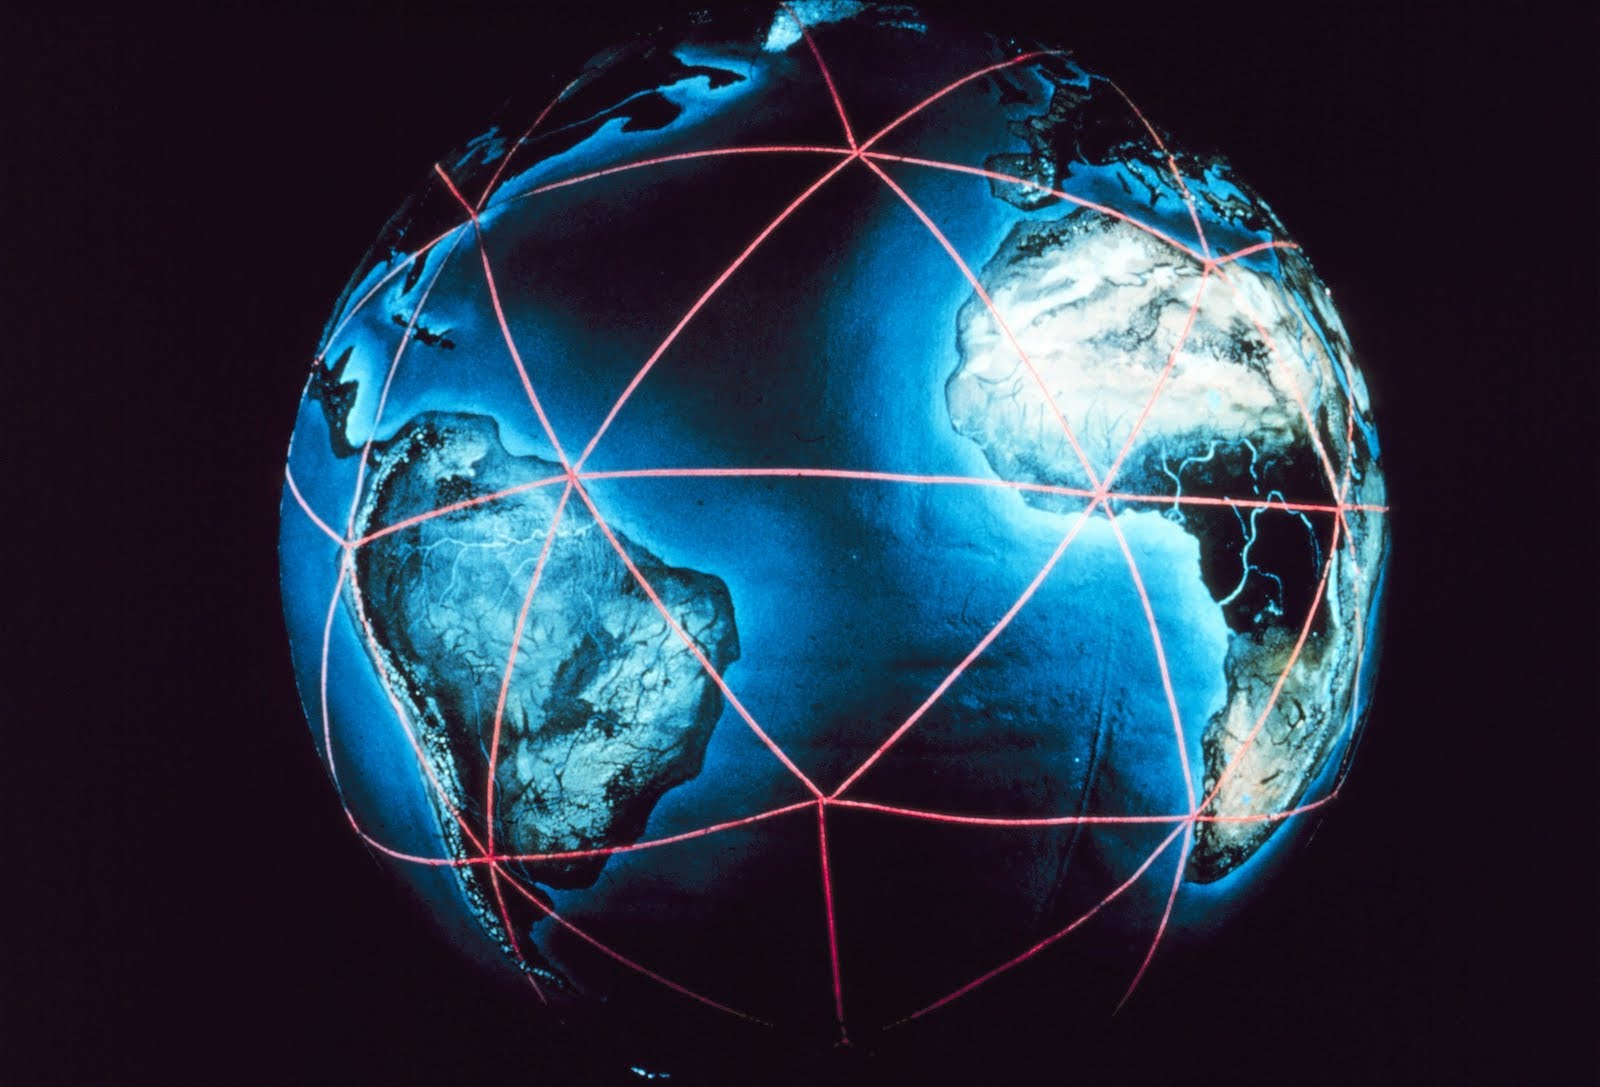 role of private sector in era of globalization